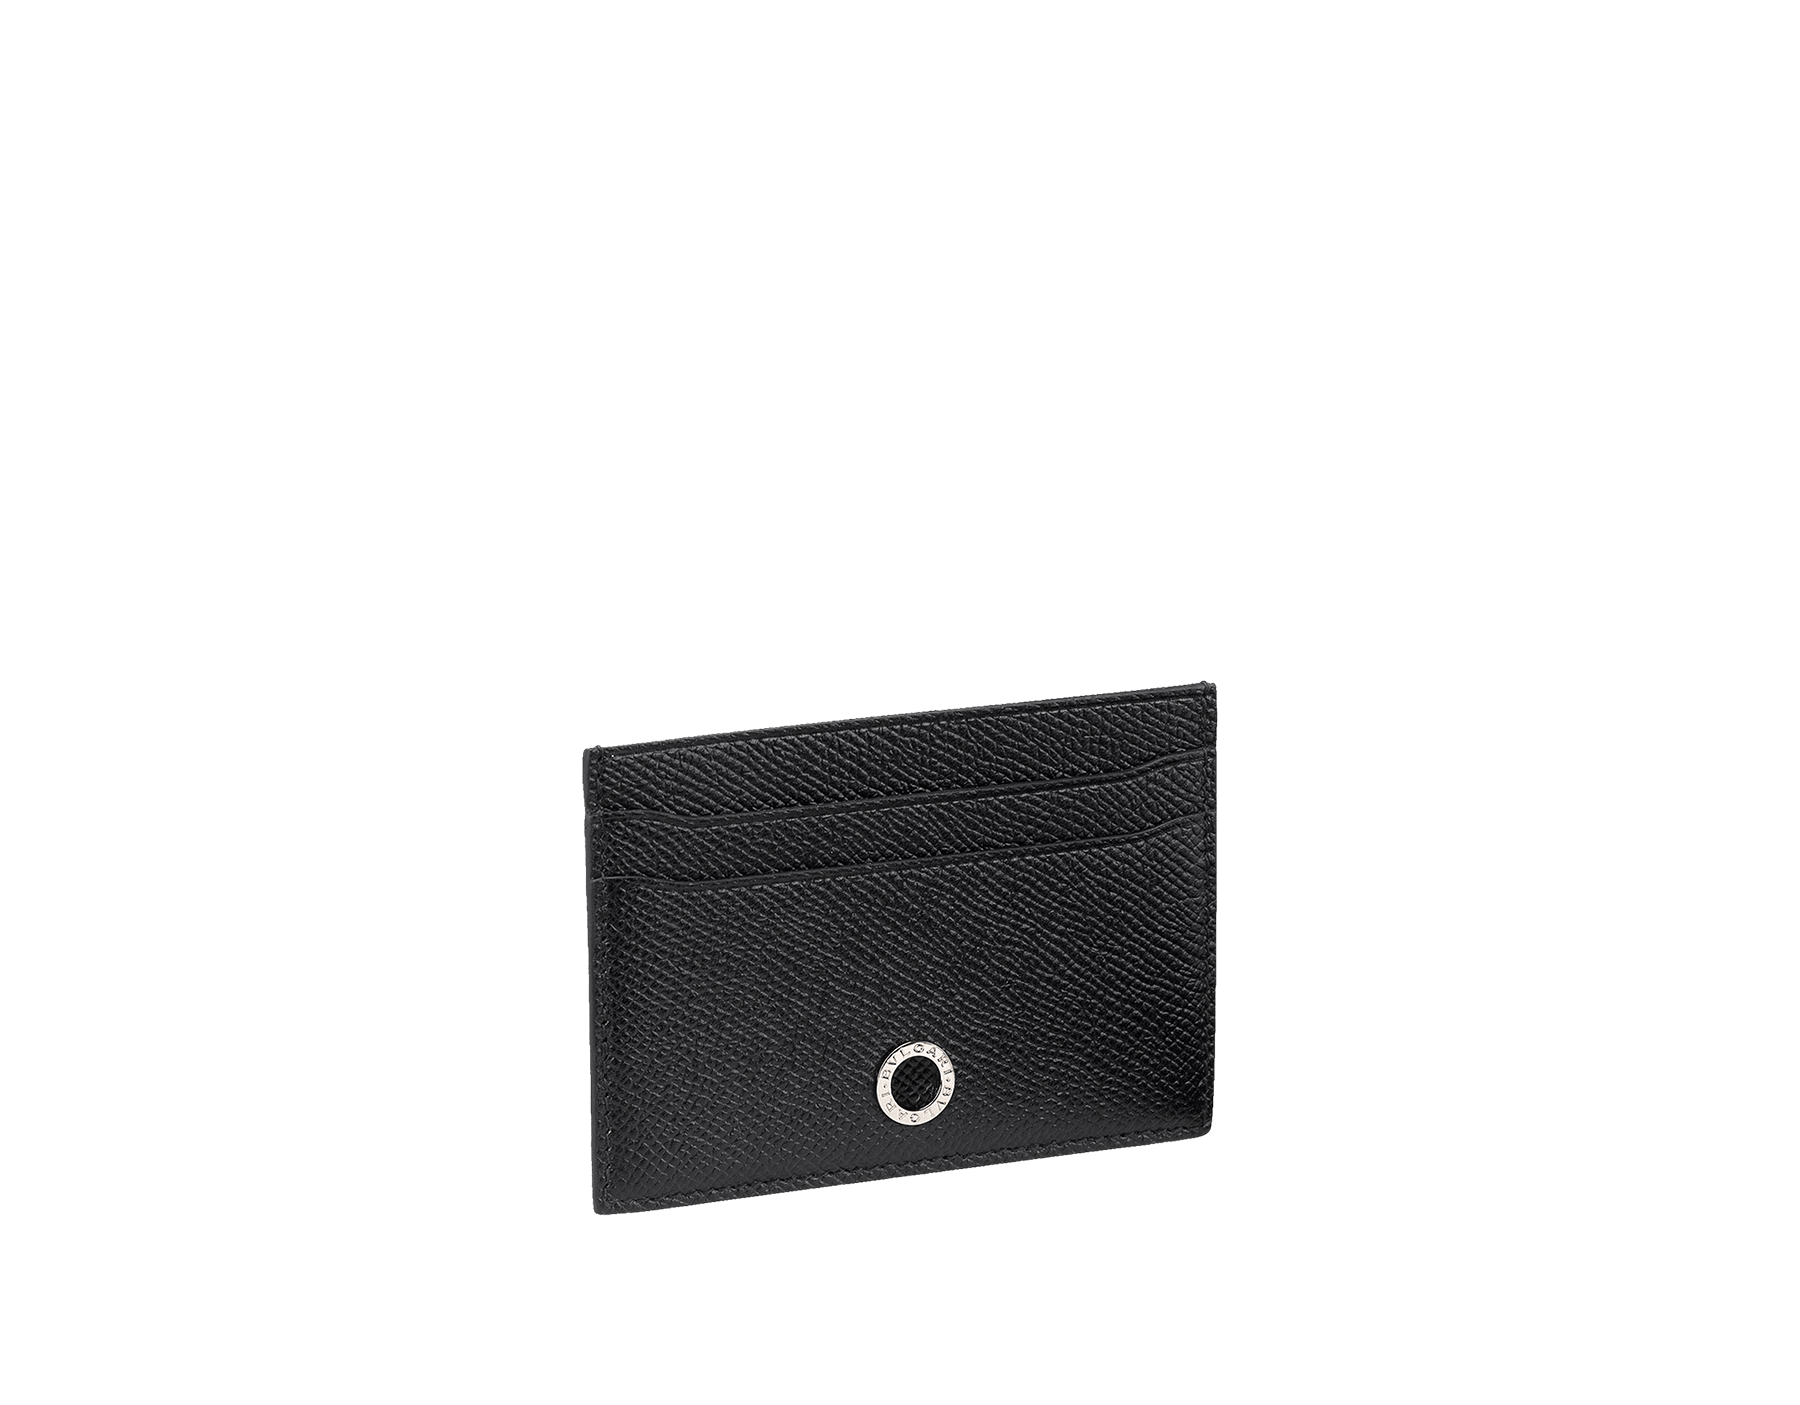 Black grain leather credit card holder with brass palladium plated BVLGARI∙BVLGARI motif. Four credit card slots and one middle pocket. Also available in other colours in-store. 10.5 x 7.5 cm. - 4.1 x 3.0 30405 image 1